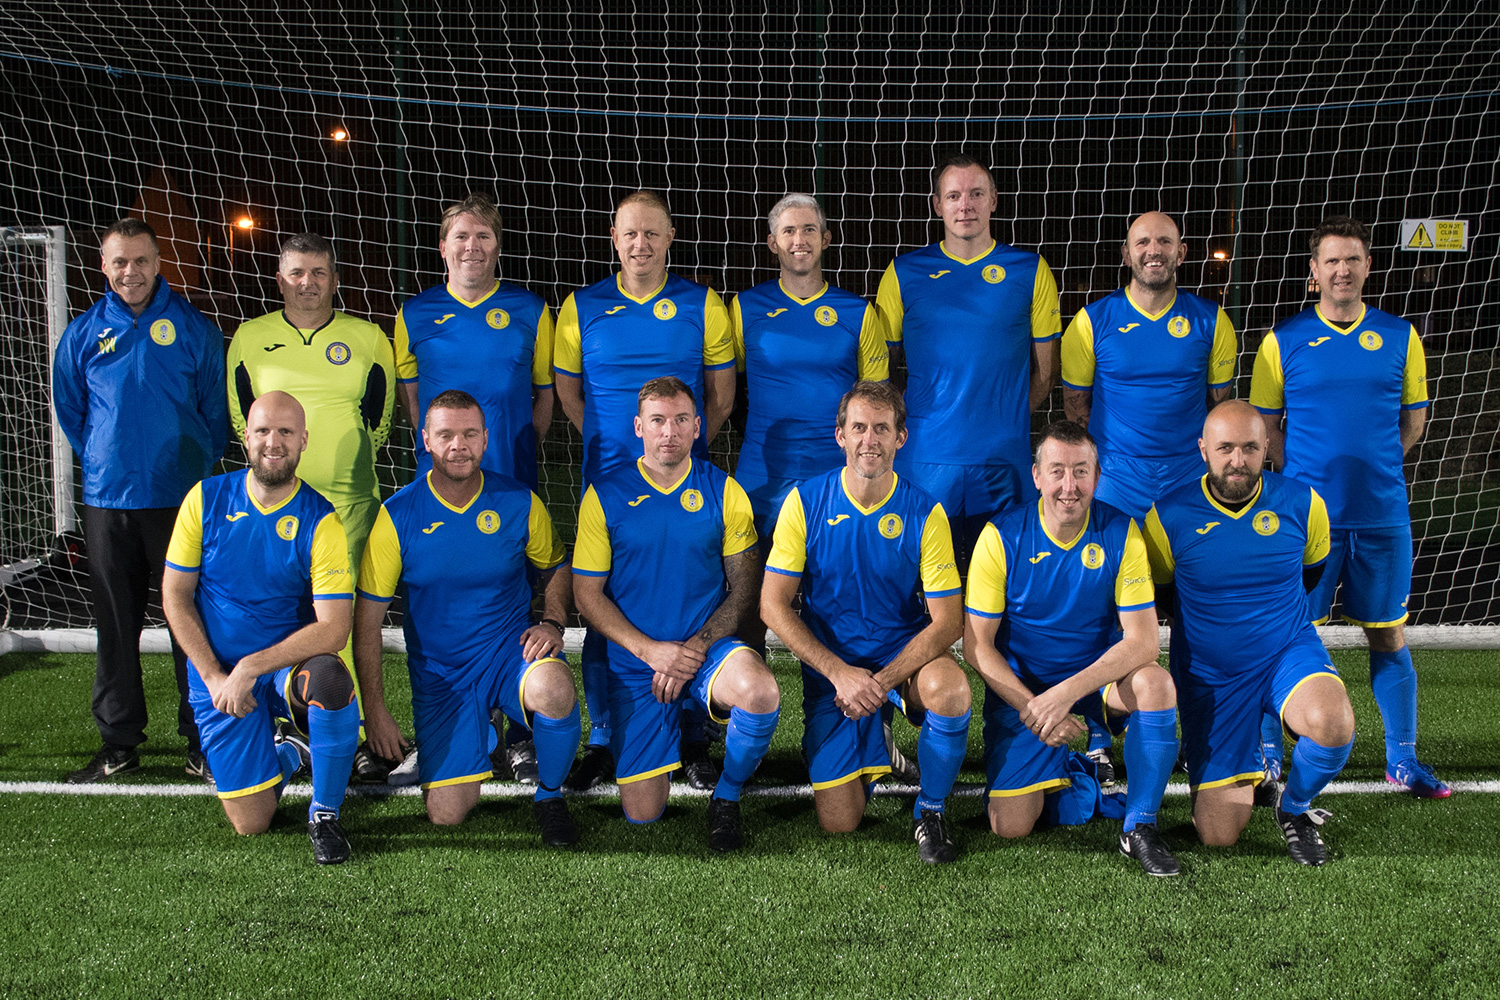 Veterans 'Blue' Team Photo